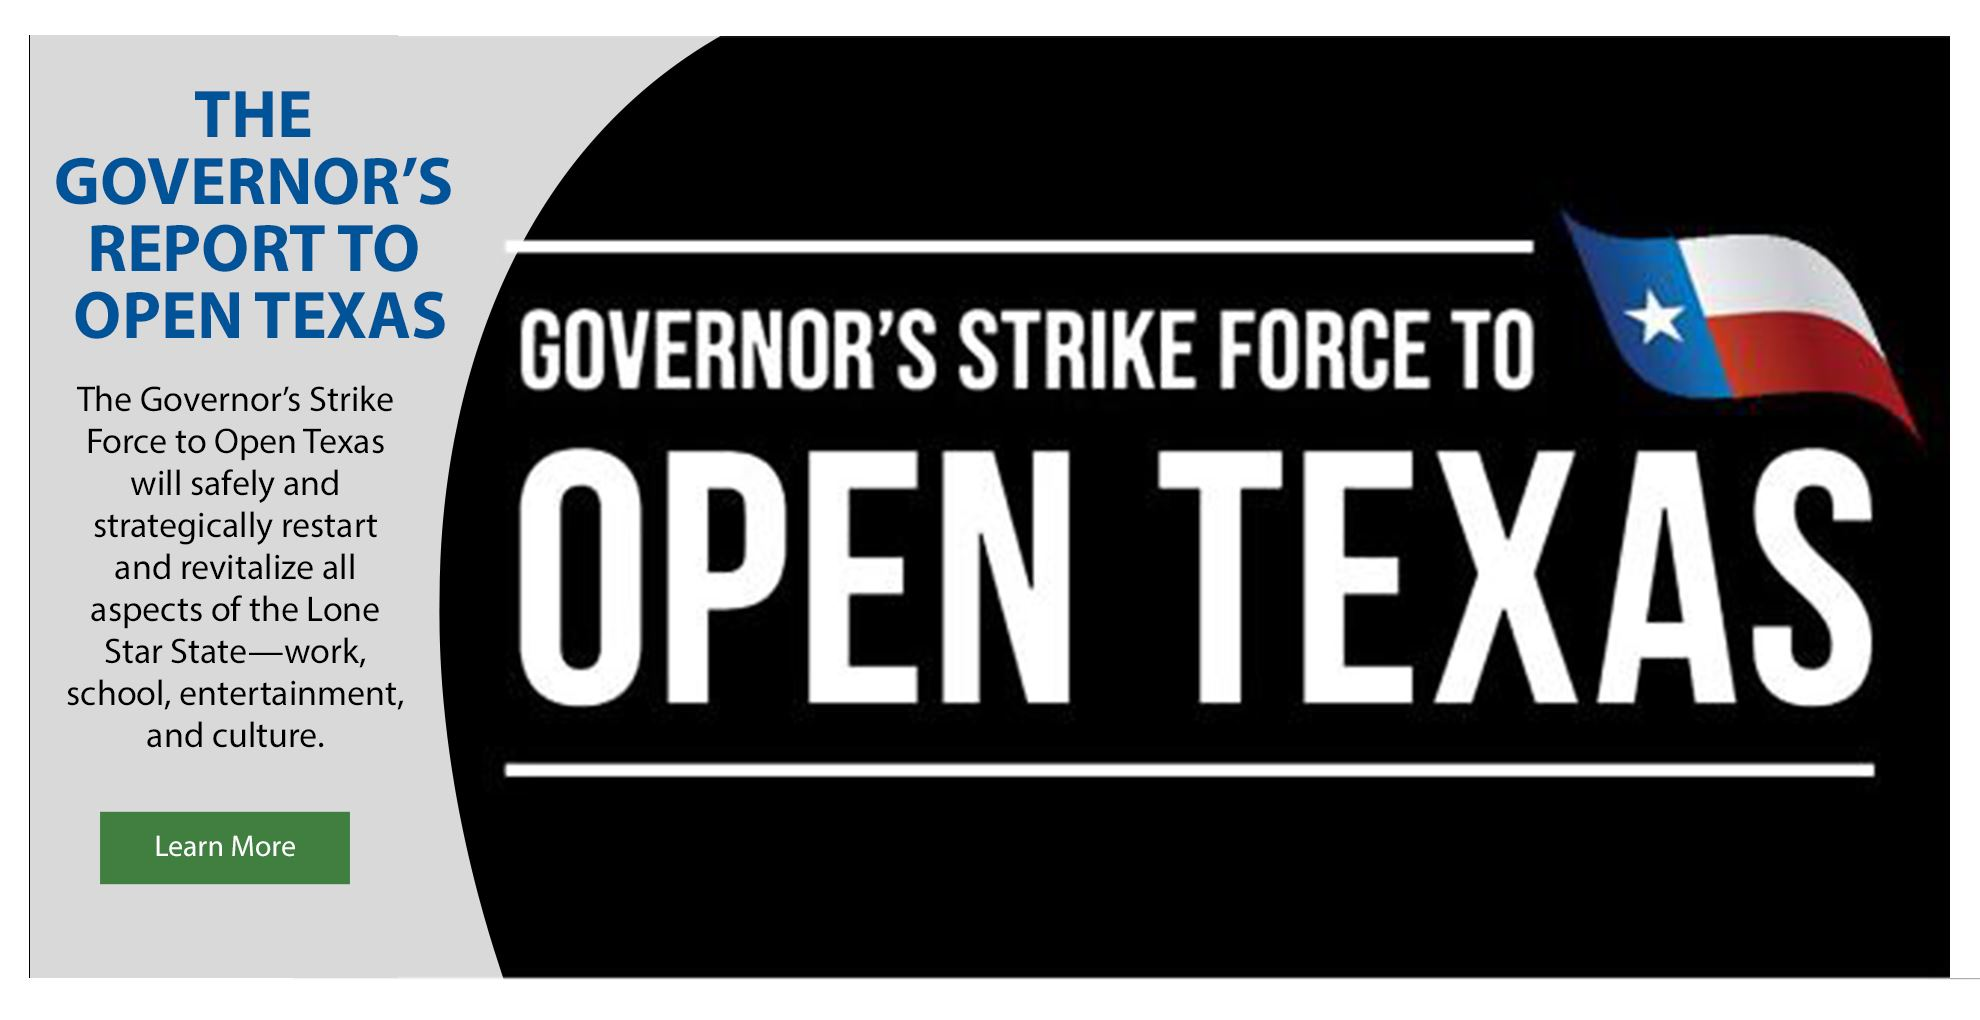 Governor' Report - Open Texas